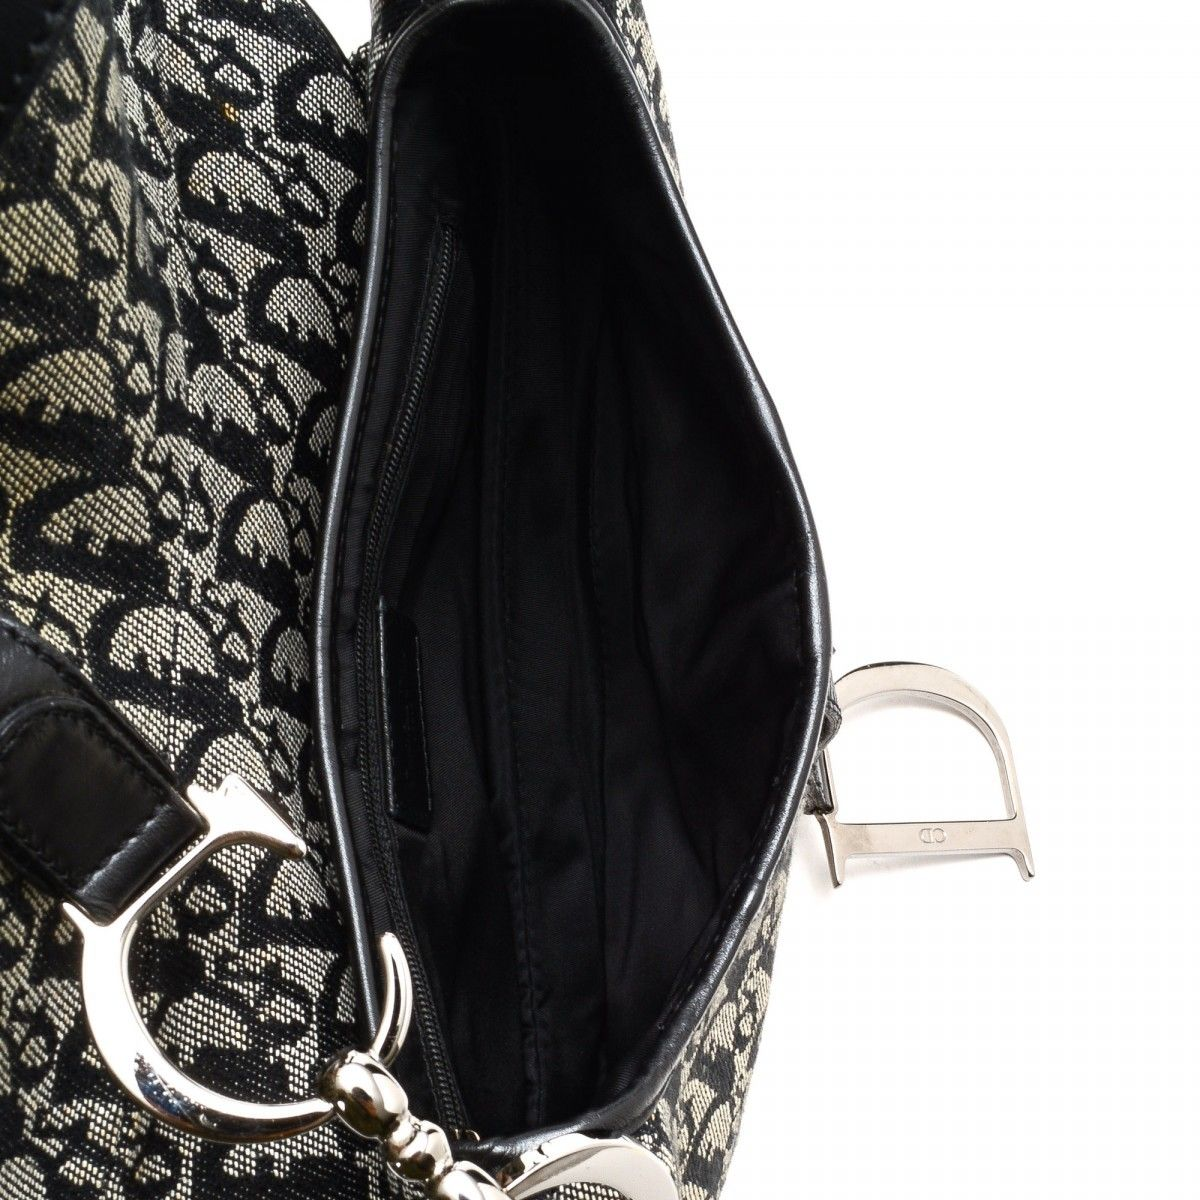 Dior Saddle Bag. LXRandCo guarantees the authenticity of this vintage Dior  Saddle Bag shoulder bag. This chic bag in beautiful black is made ... 6e9ecad9c4